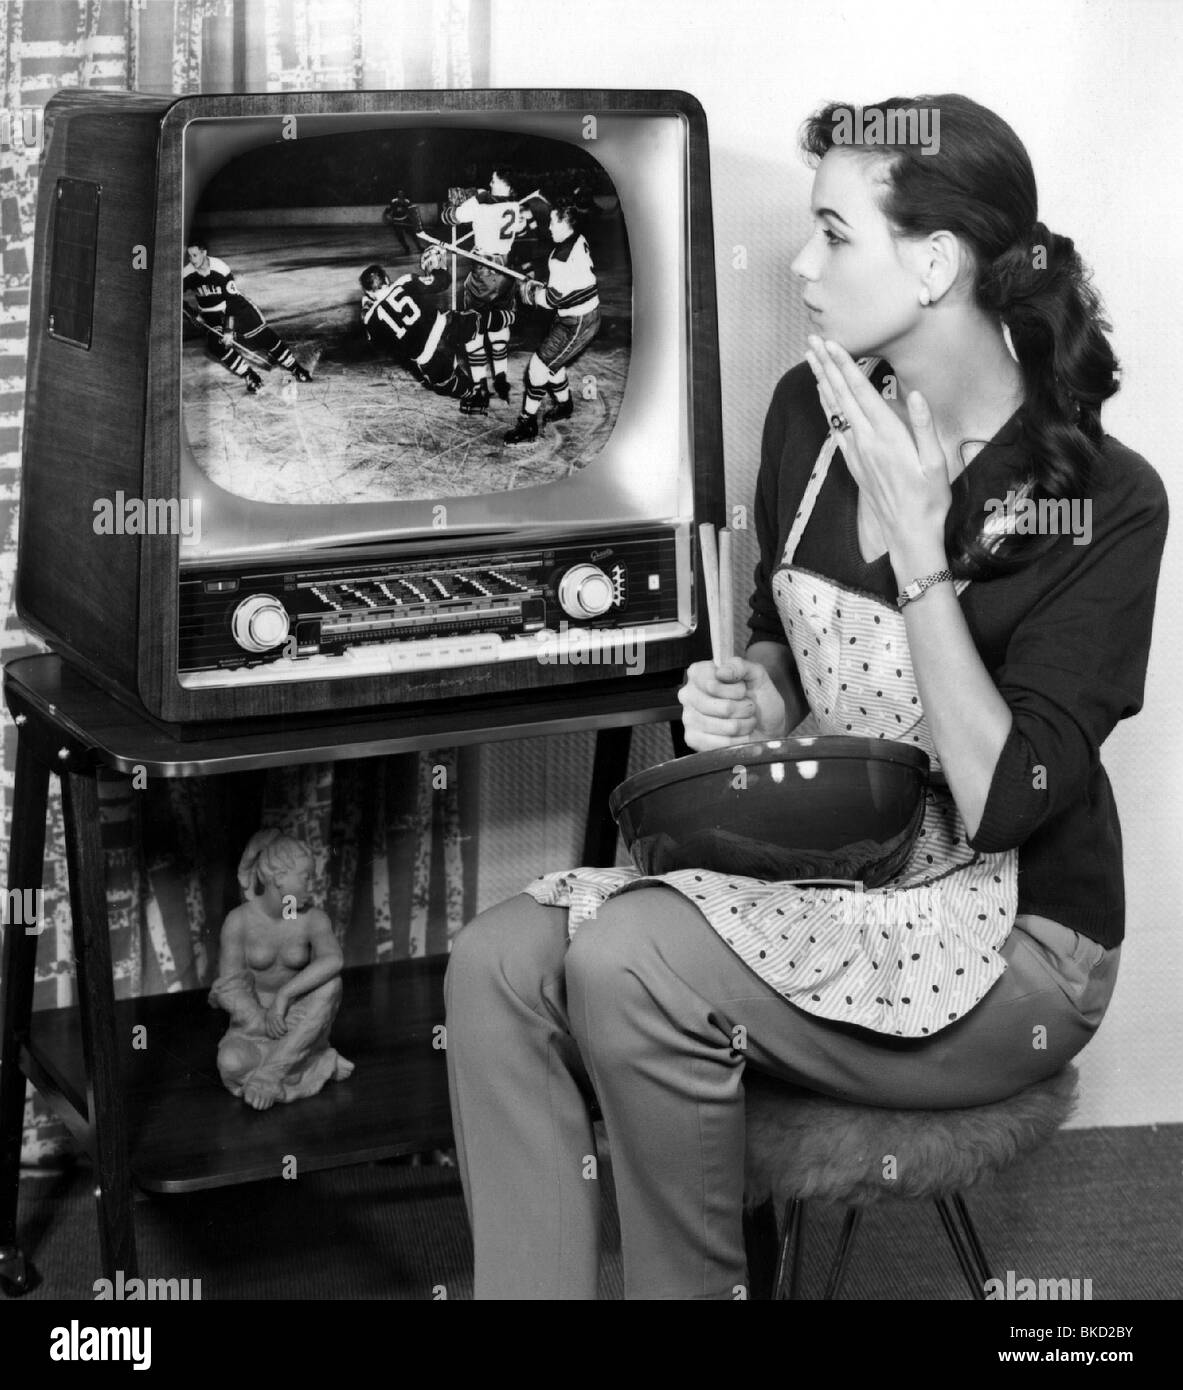 Television Set 1960s Black And White Stock Photos Images Alamy # Pose Television En Bois Pro